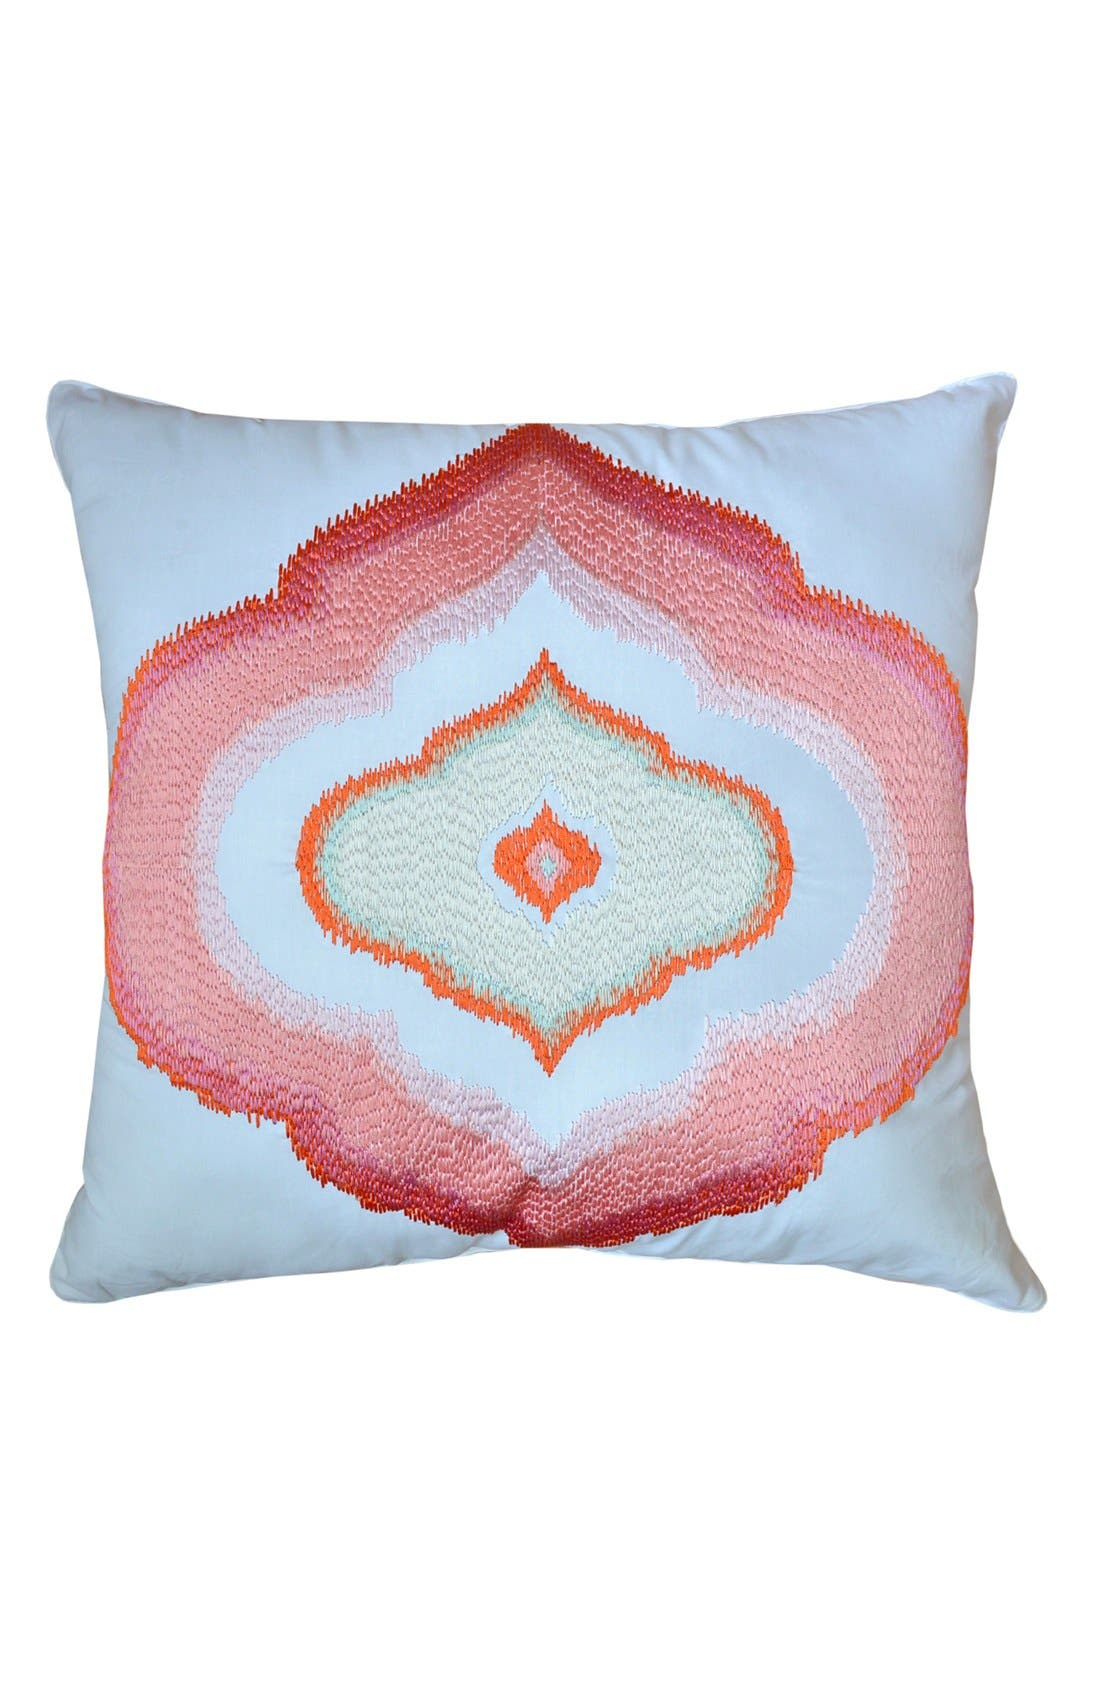 Main Image - Dena Home 'Retreat' Embroidered Square Pillow